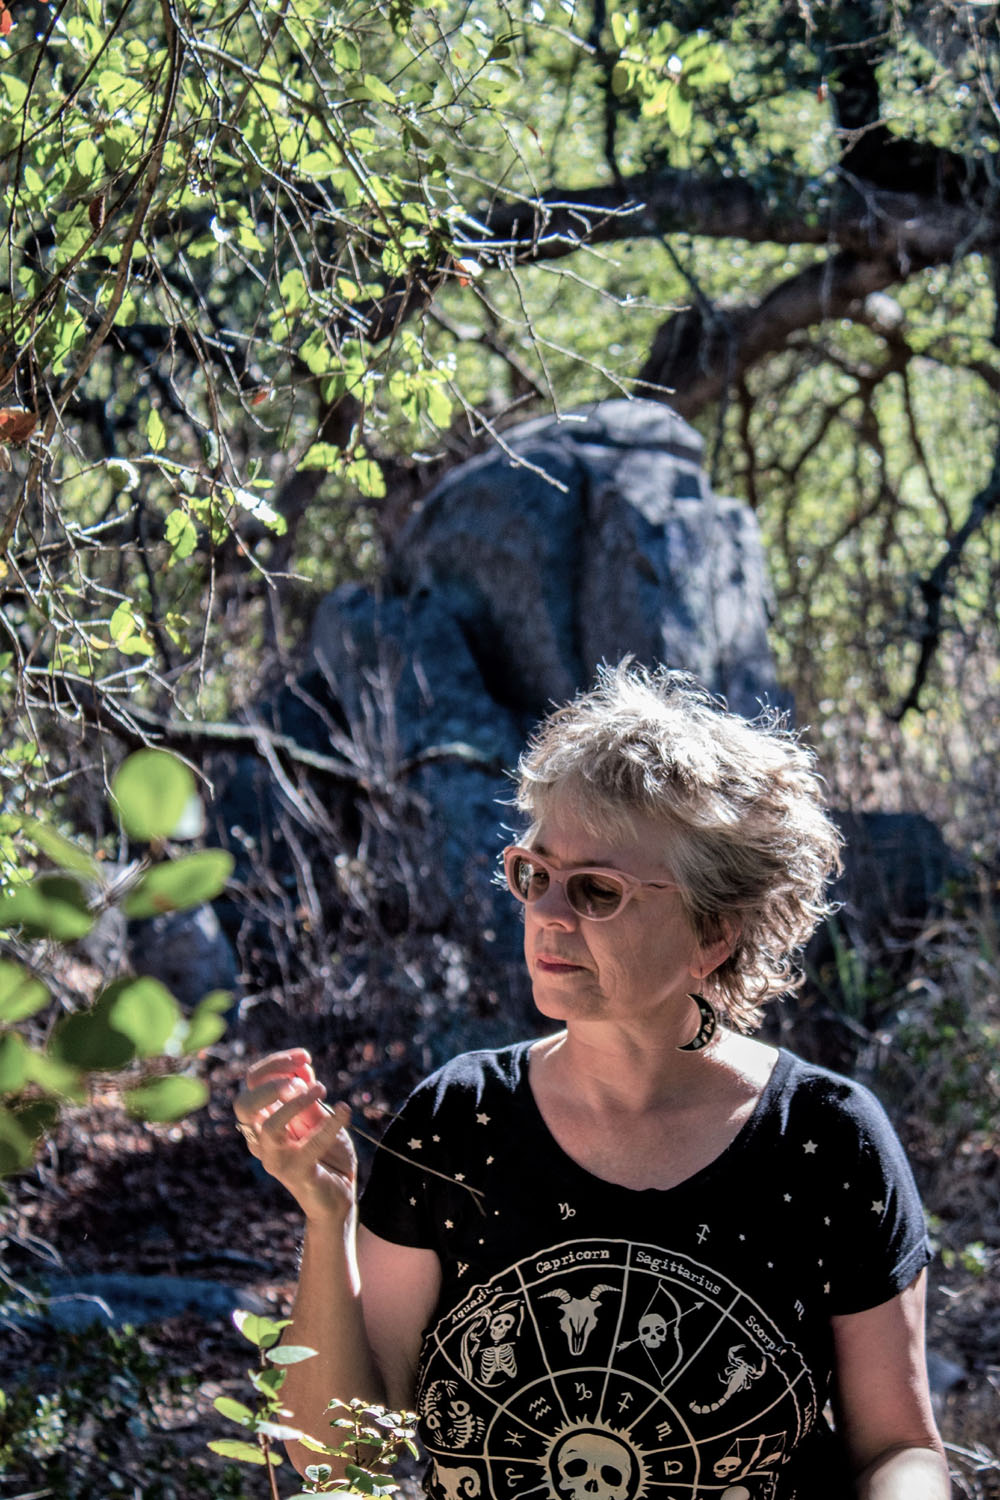 Kathy Crabbe at the Plateau, California